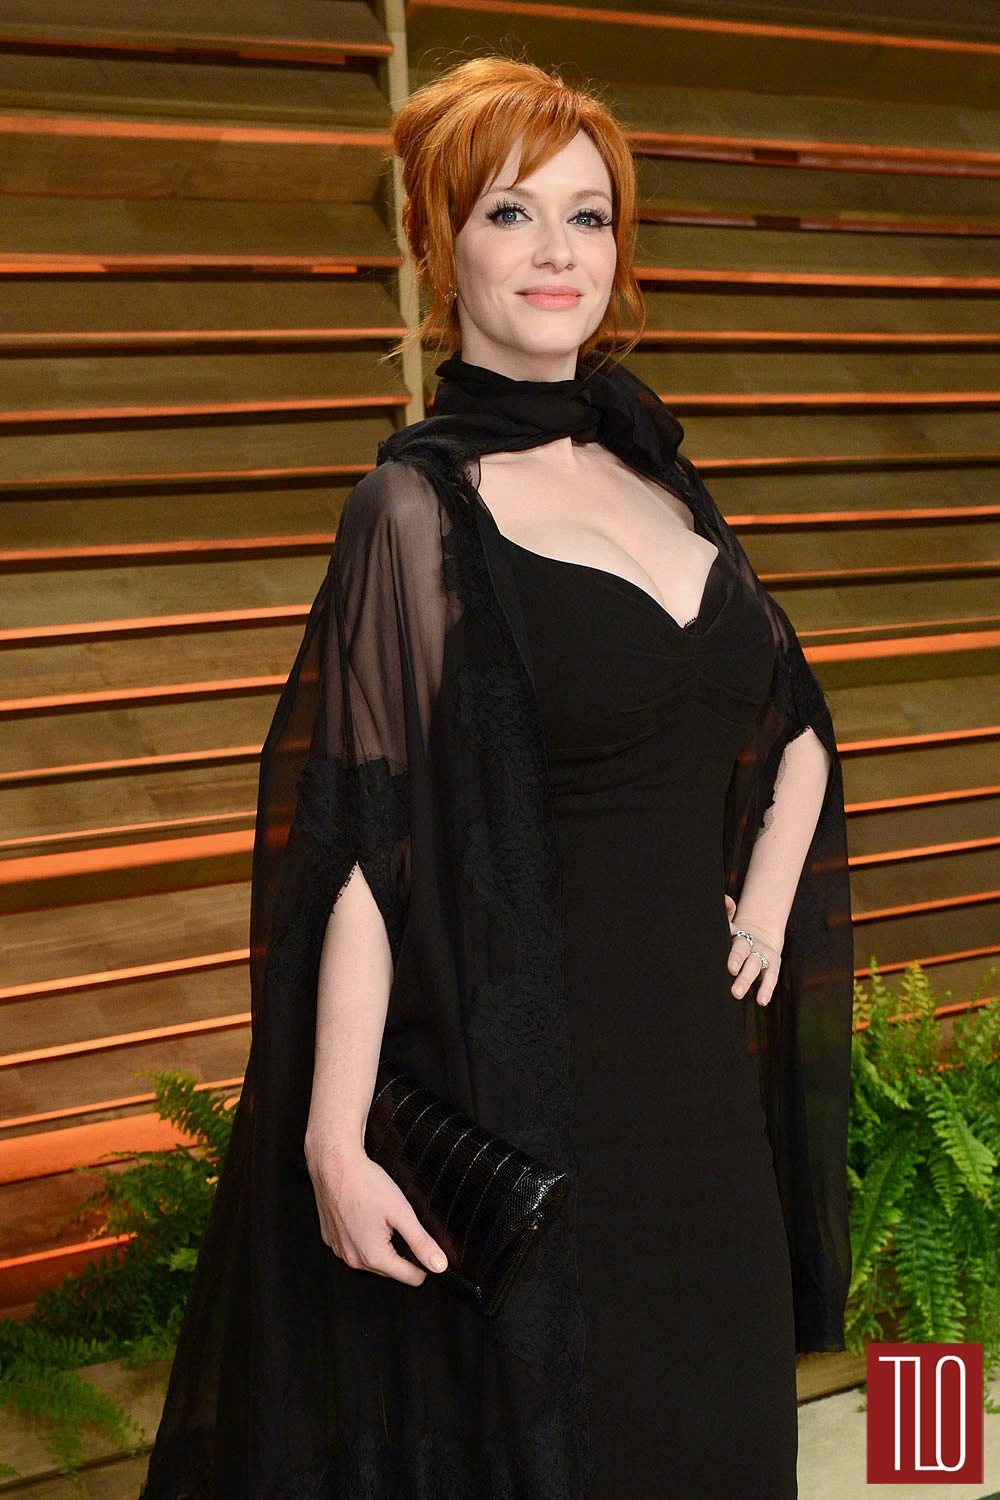 Christina-Hendricks-LWren-Scott-Oscars-2014-Vanity-Fair-Tom-Lorenzo-Site-TLO (1)